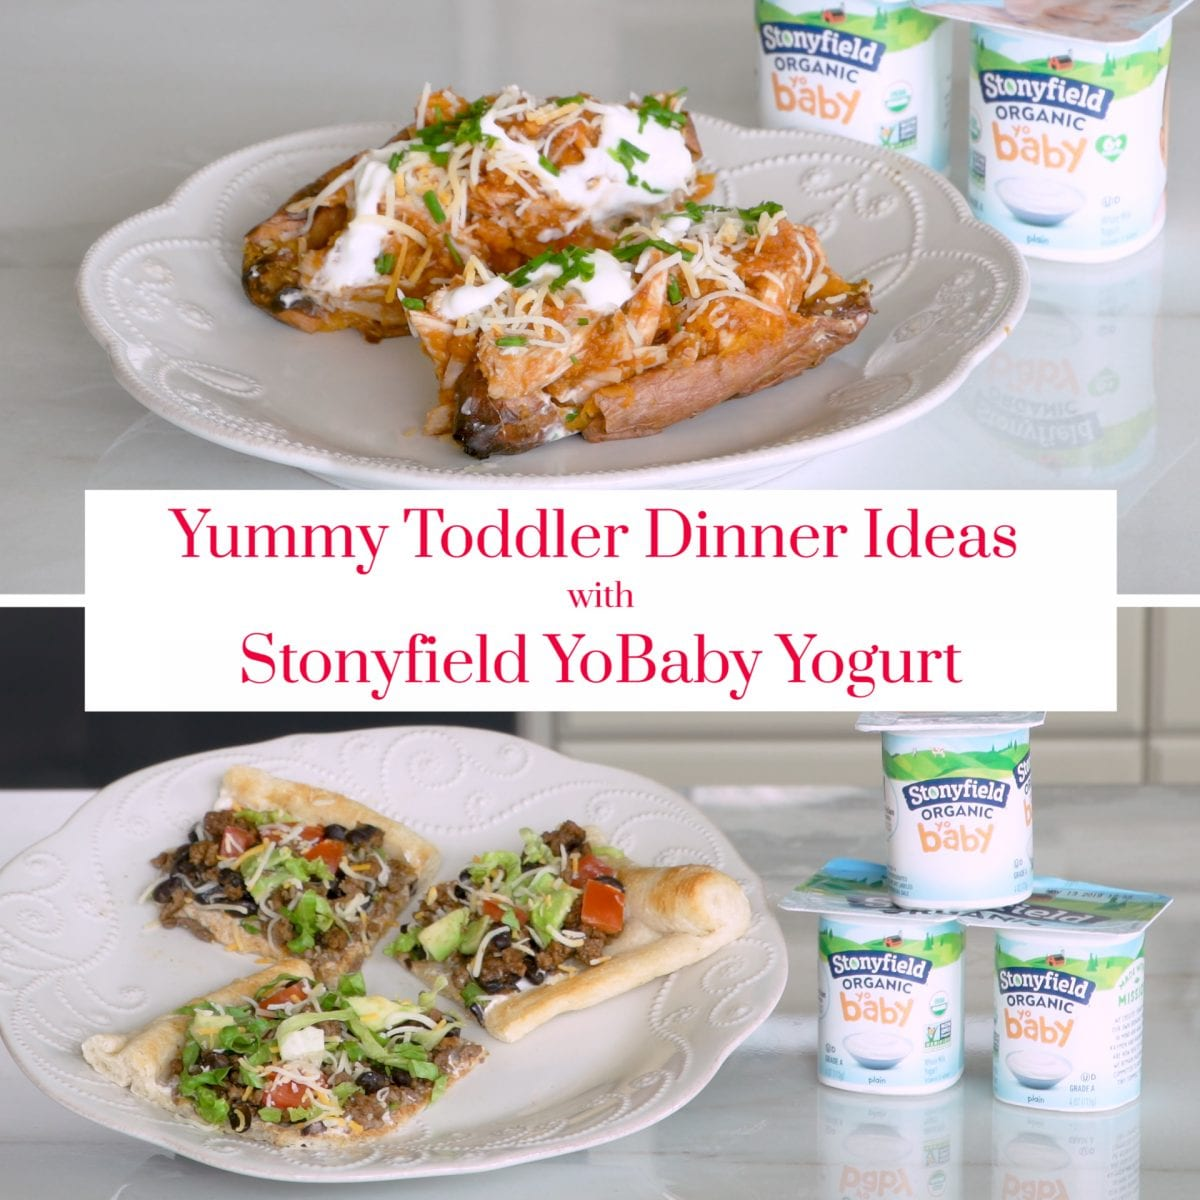 Stonyfield Dinner Recipes with their YoBaby yogurt.